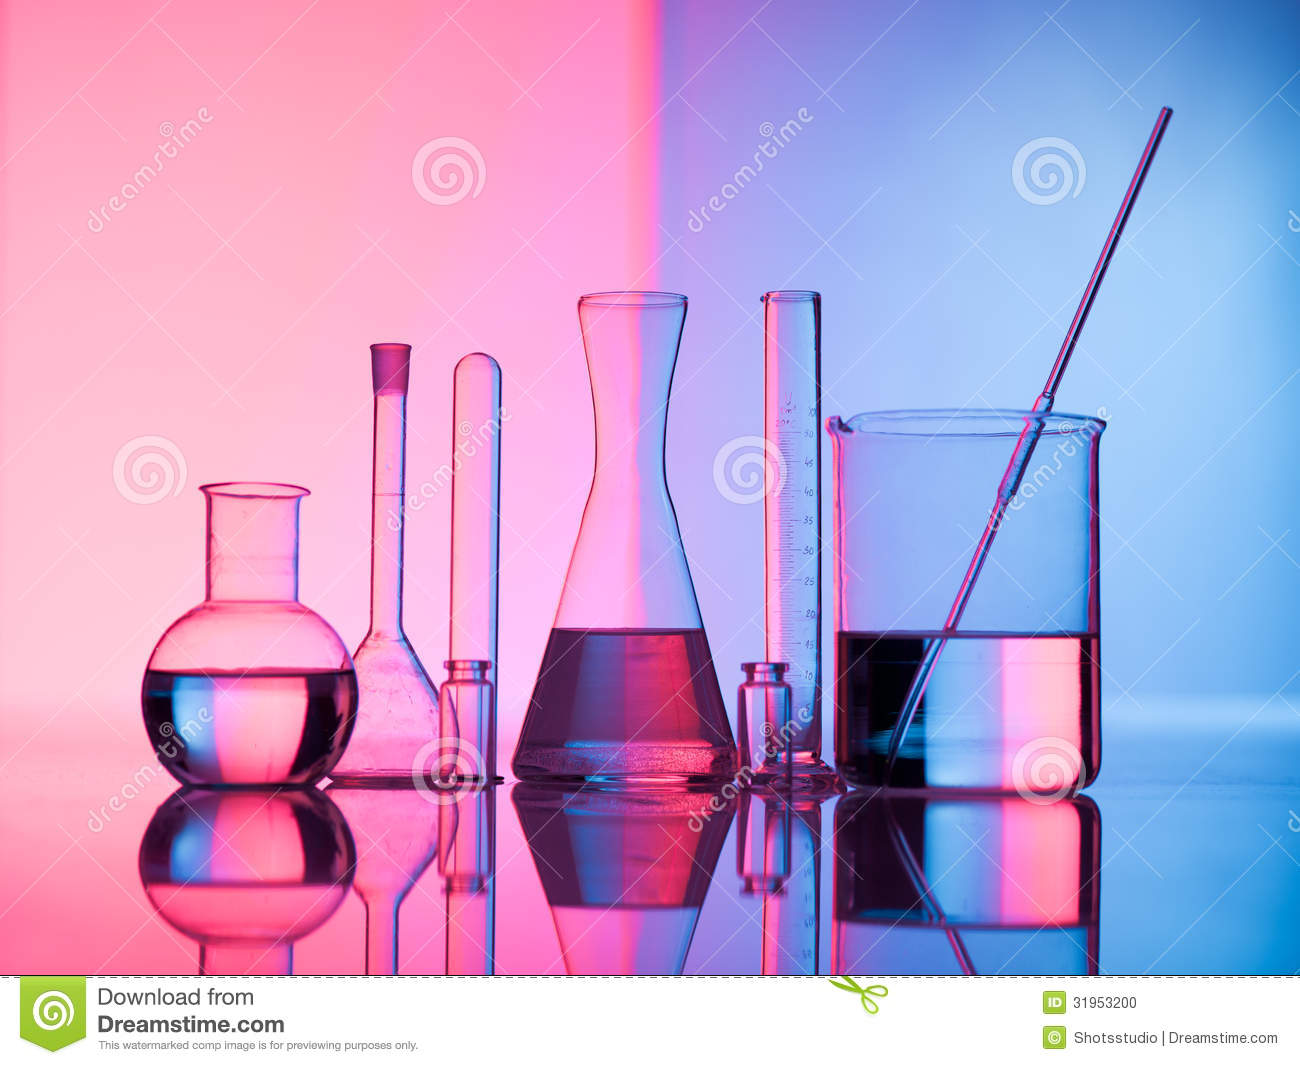 Different Laboratory Glassware With Water And Empty Reflection